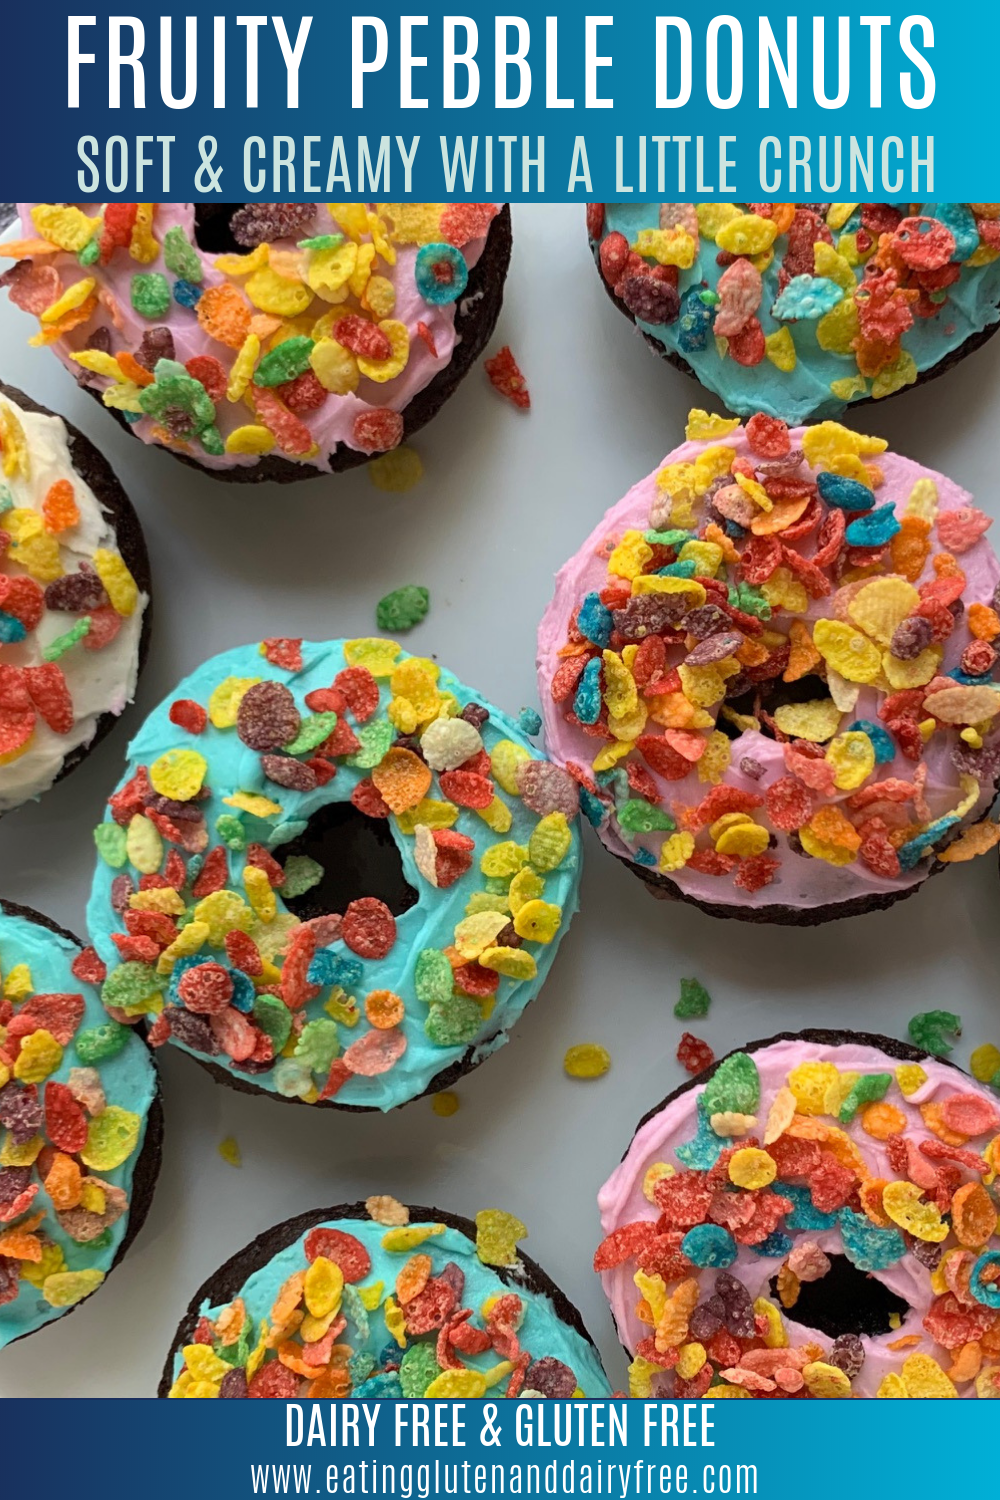 Chocolate donuts with frosting and fruity pebble cereal on top